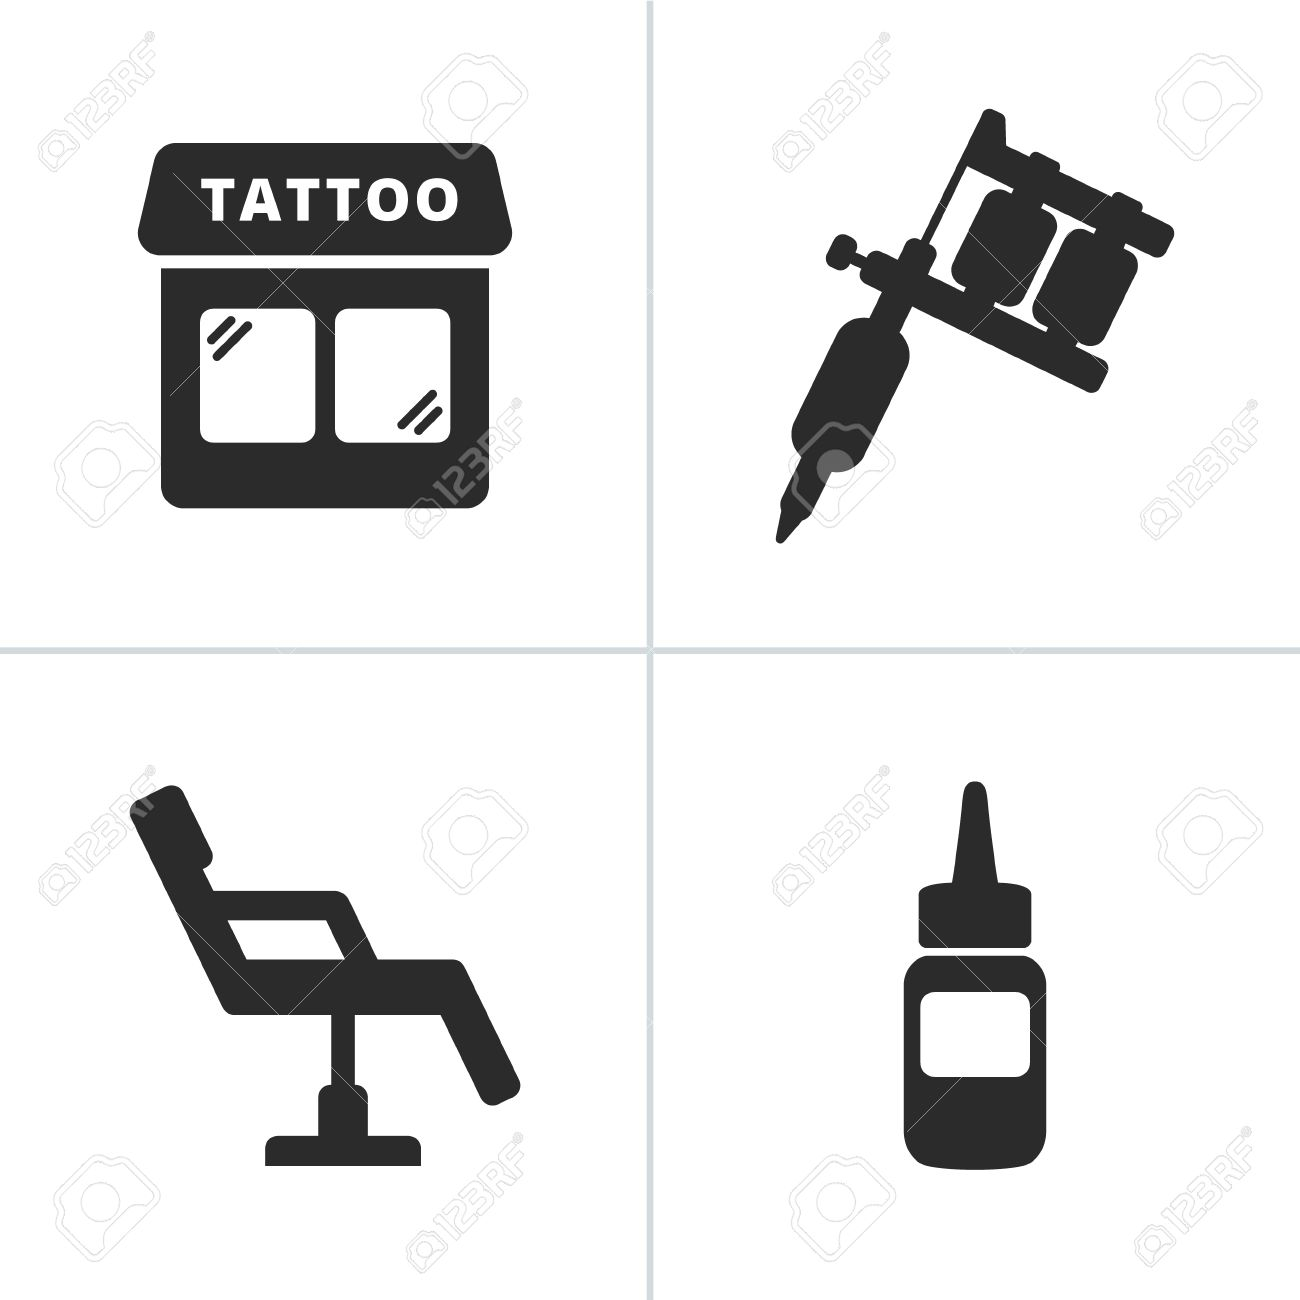 1 651 tattoo machine stock vector illustration and royalty free rh 123rf com Tattoo Machine Silhouette Tattoo Machine Silhouette